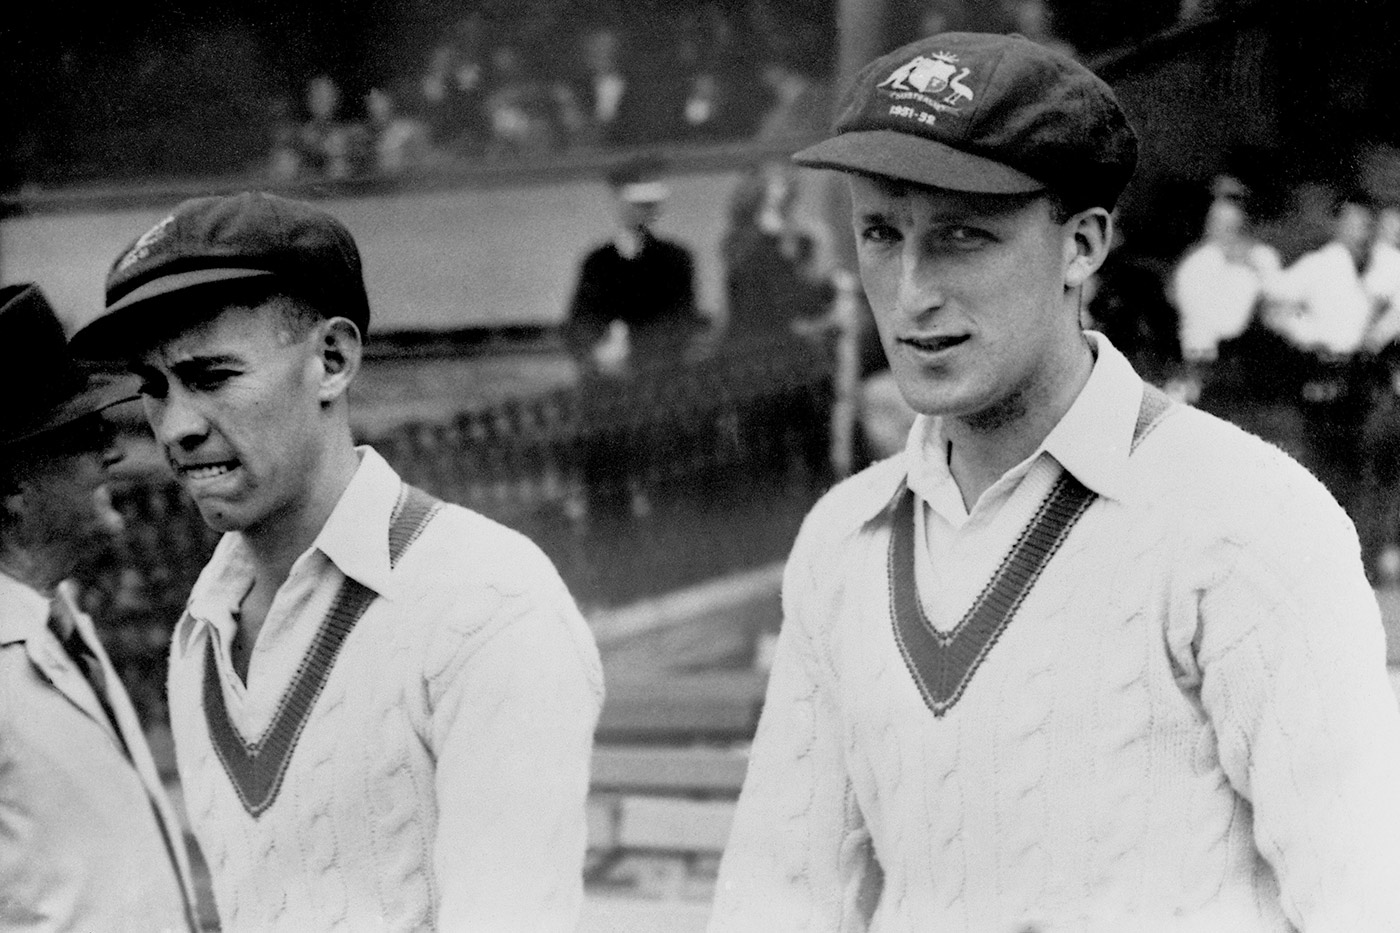 Archer (left) walks out with Graeme Hole in the Sydney Test against West Indies in 1951